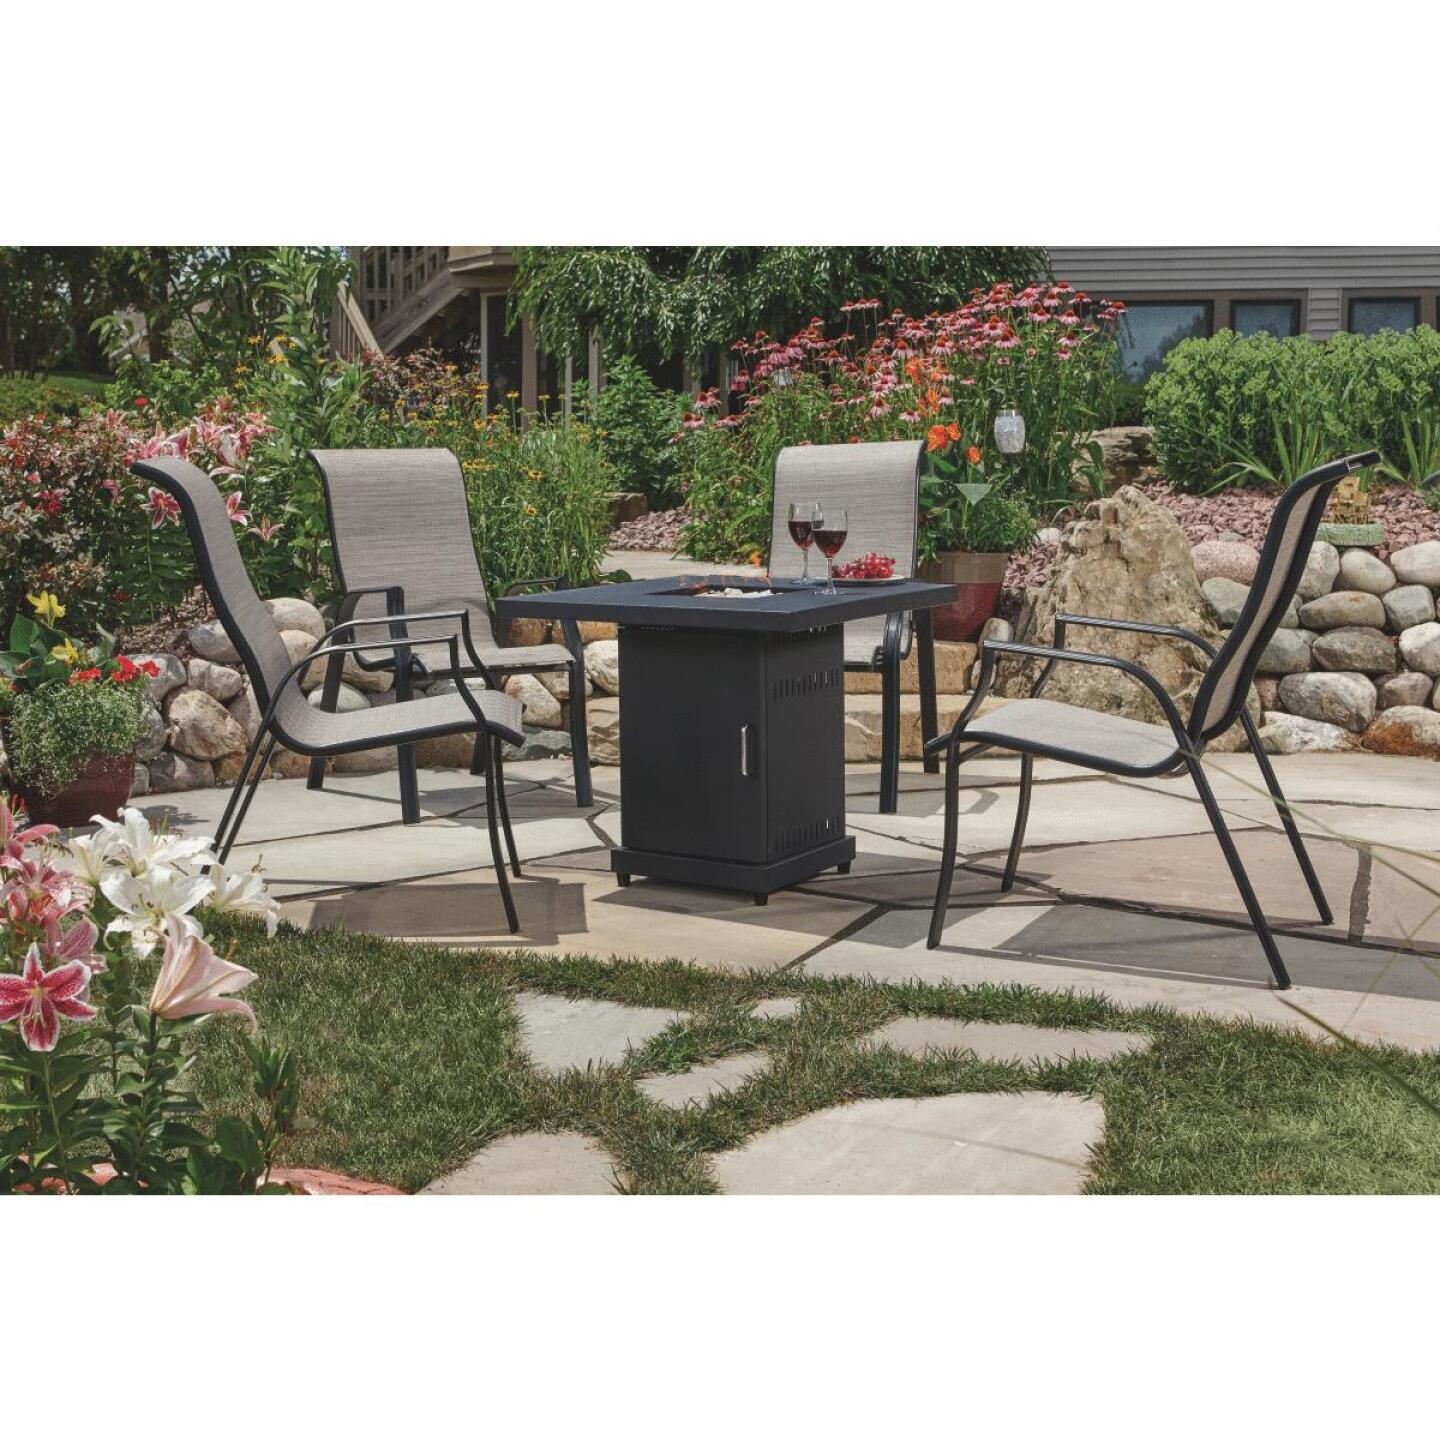 Hiland 30 In. Square Fire Pit Image 10